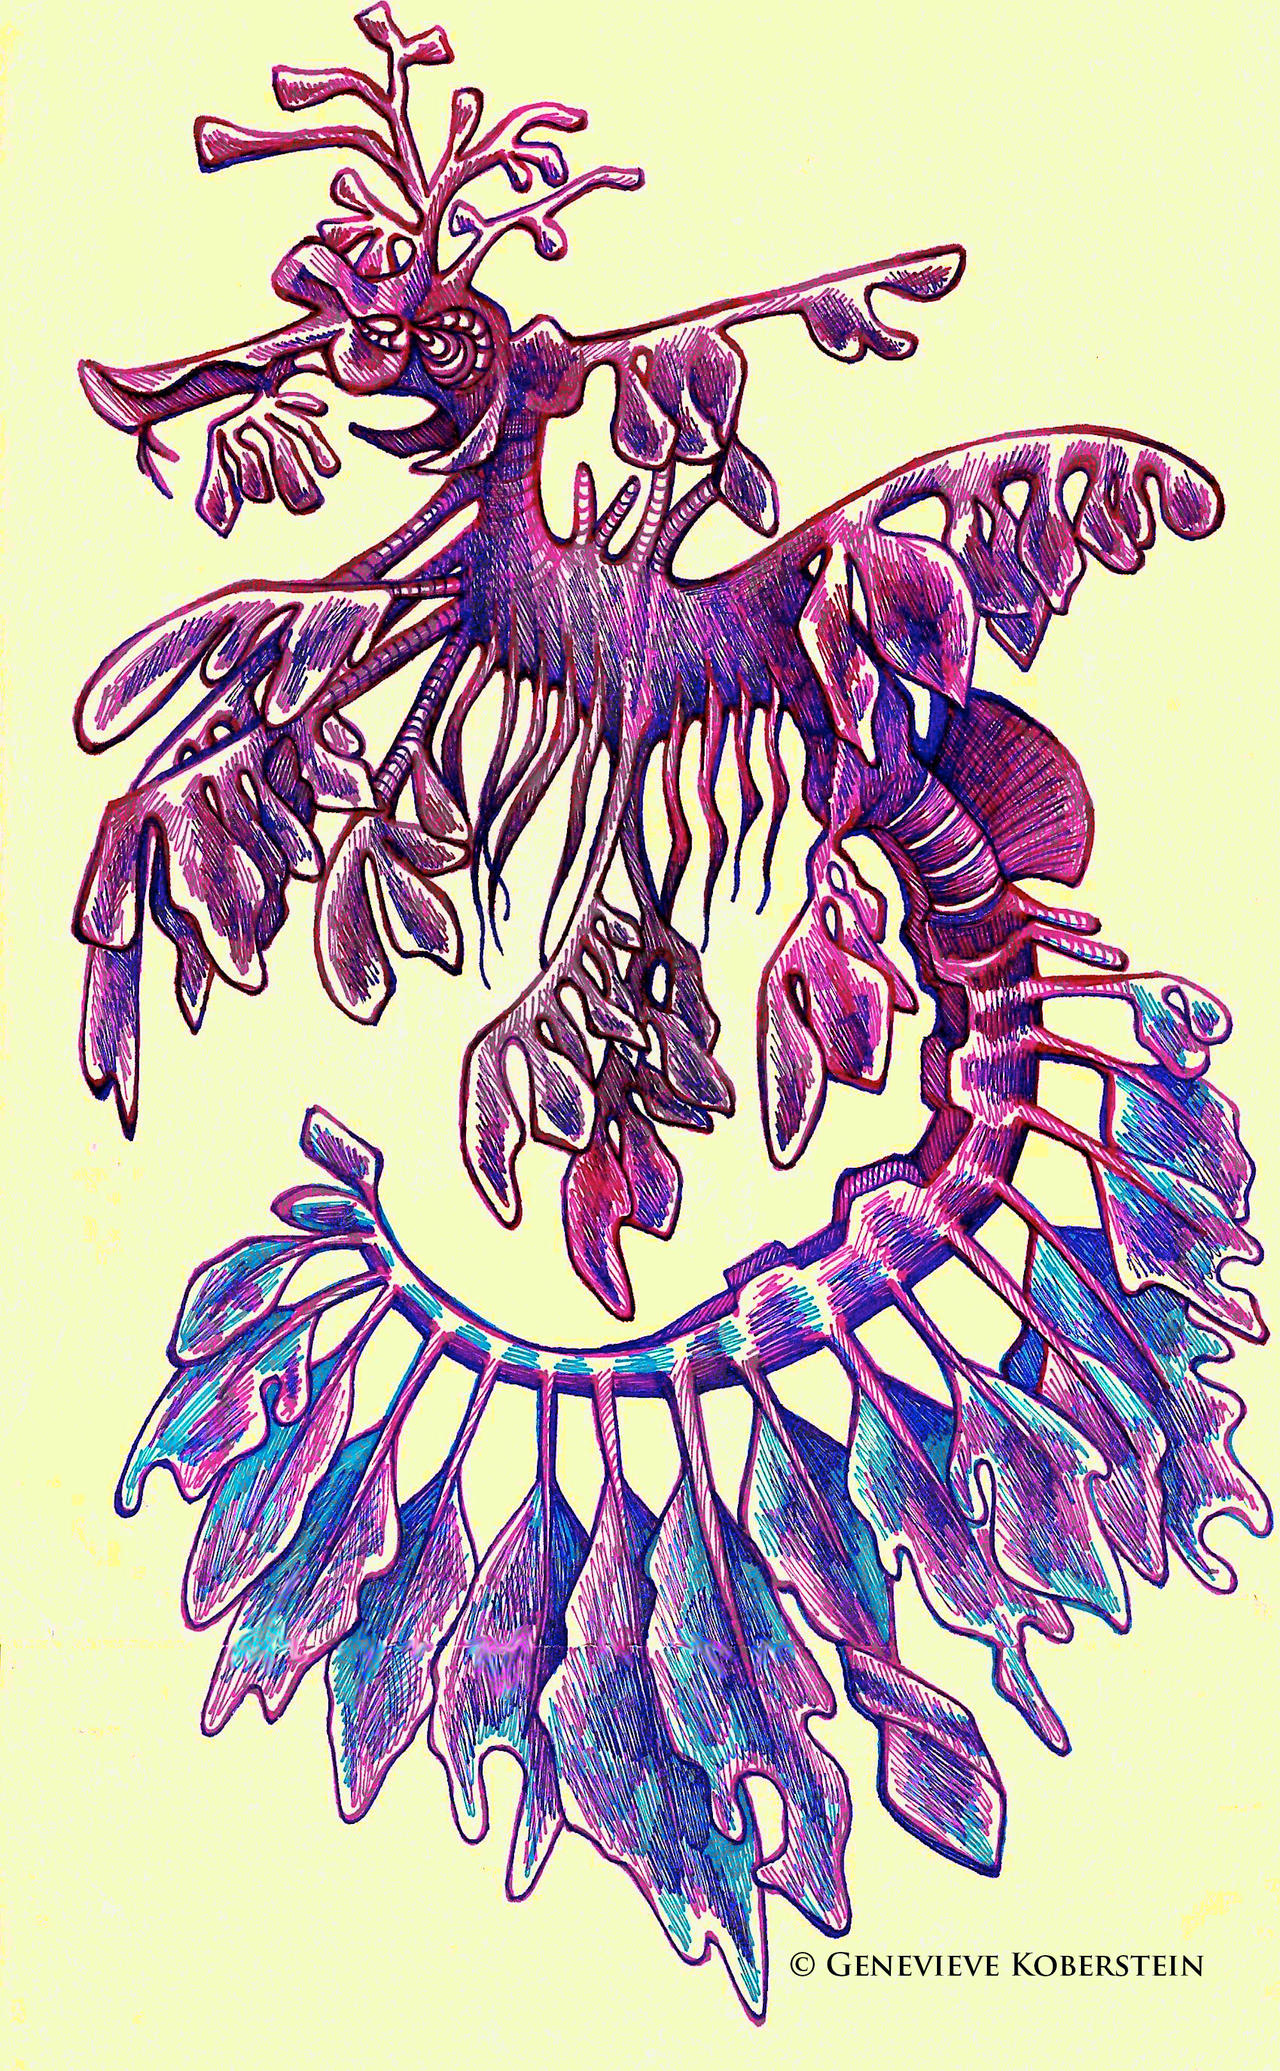 Leafy sea dragon by honey art on deviantart for Sea dragon tattoo